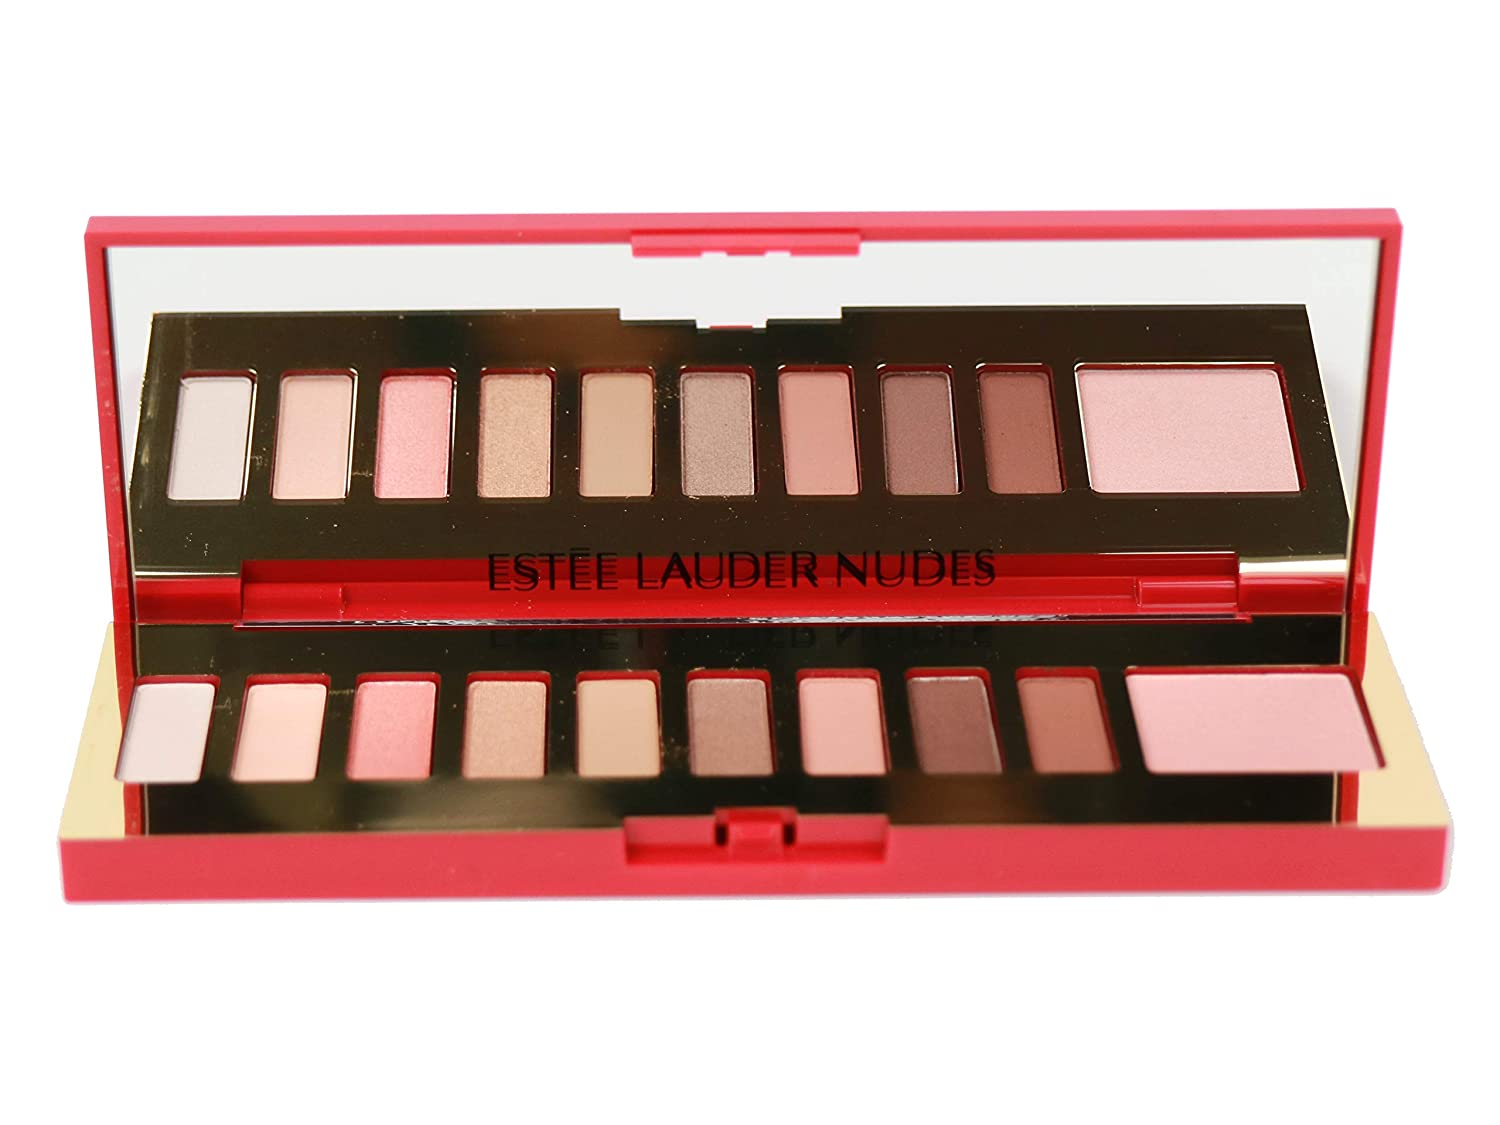 Estee Lauder Pure Color Envy Eye and Cheek Palette - Nudes, Eyeshadow(9) and Blush, Unboxed Limited Edition